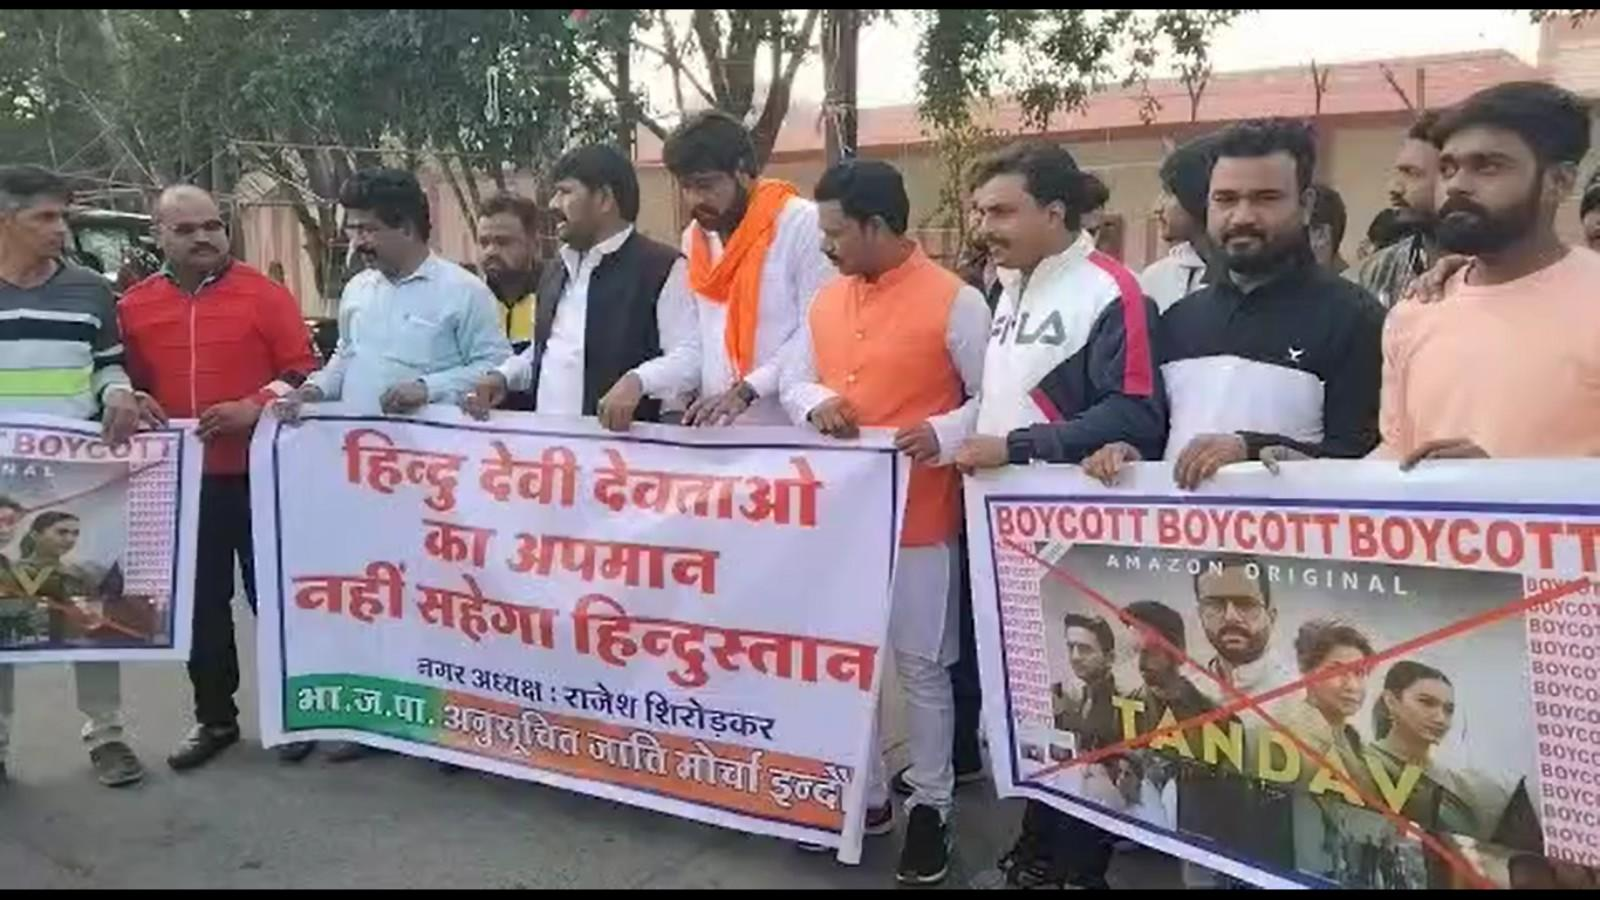 bjp-activists-protest-against-web-series-tandava-in-indore